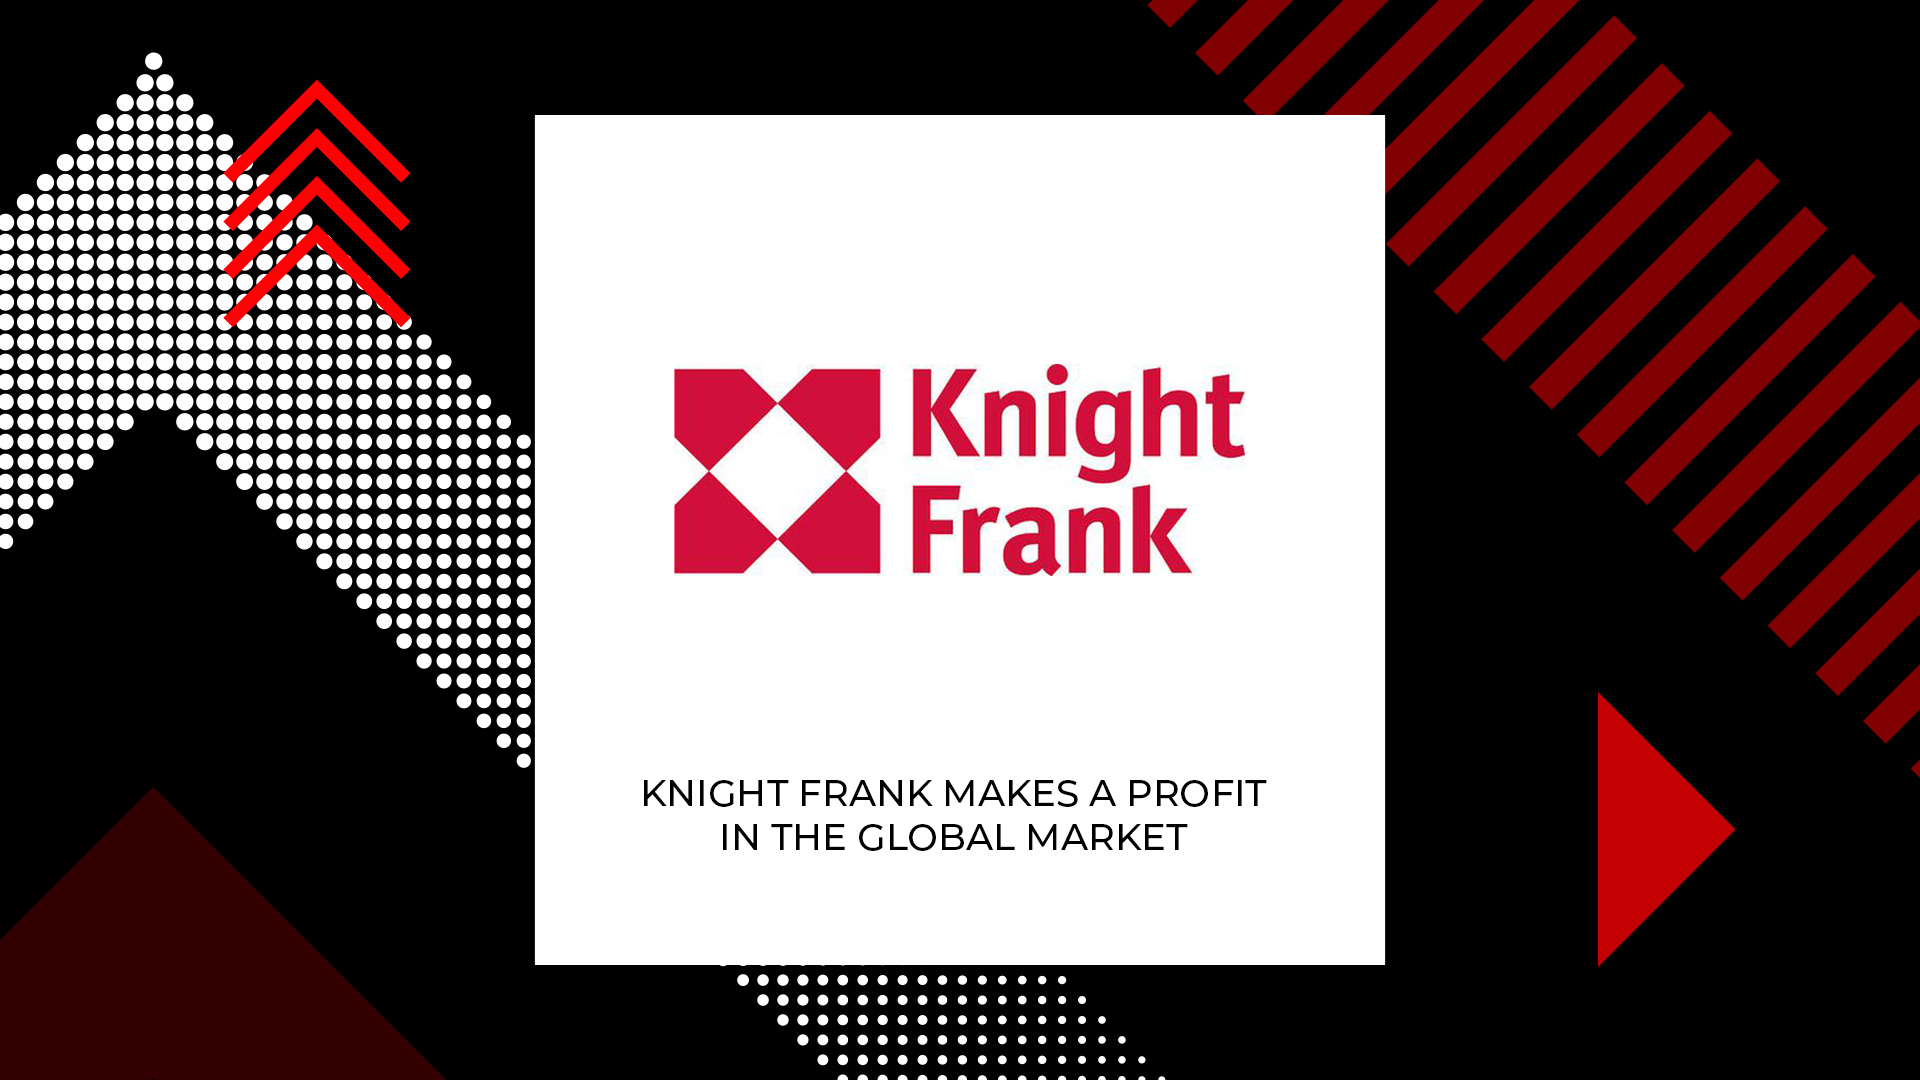 Knight Frank Profits Jump to 14% Led By Resilient Global Markets